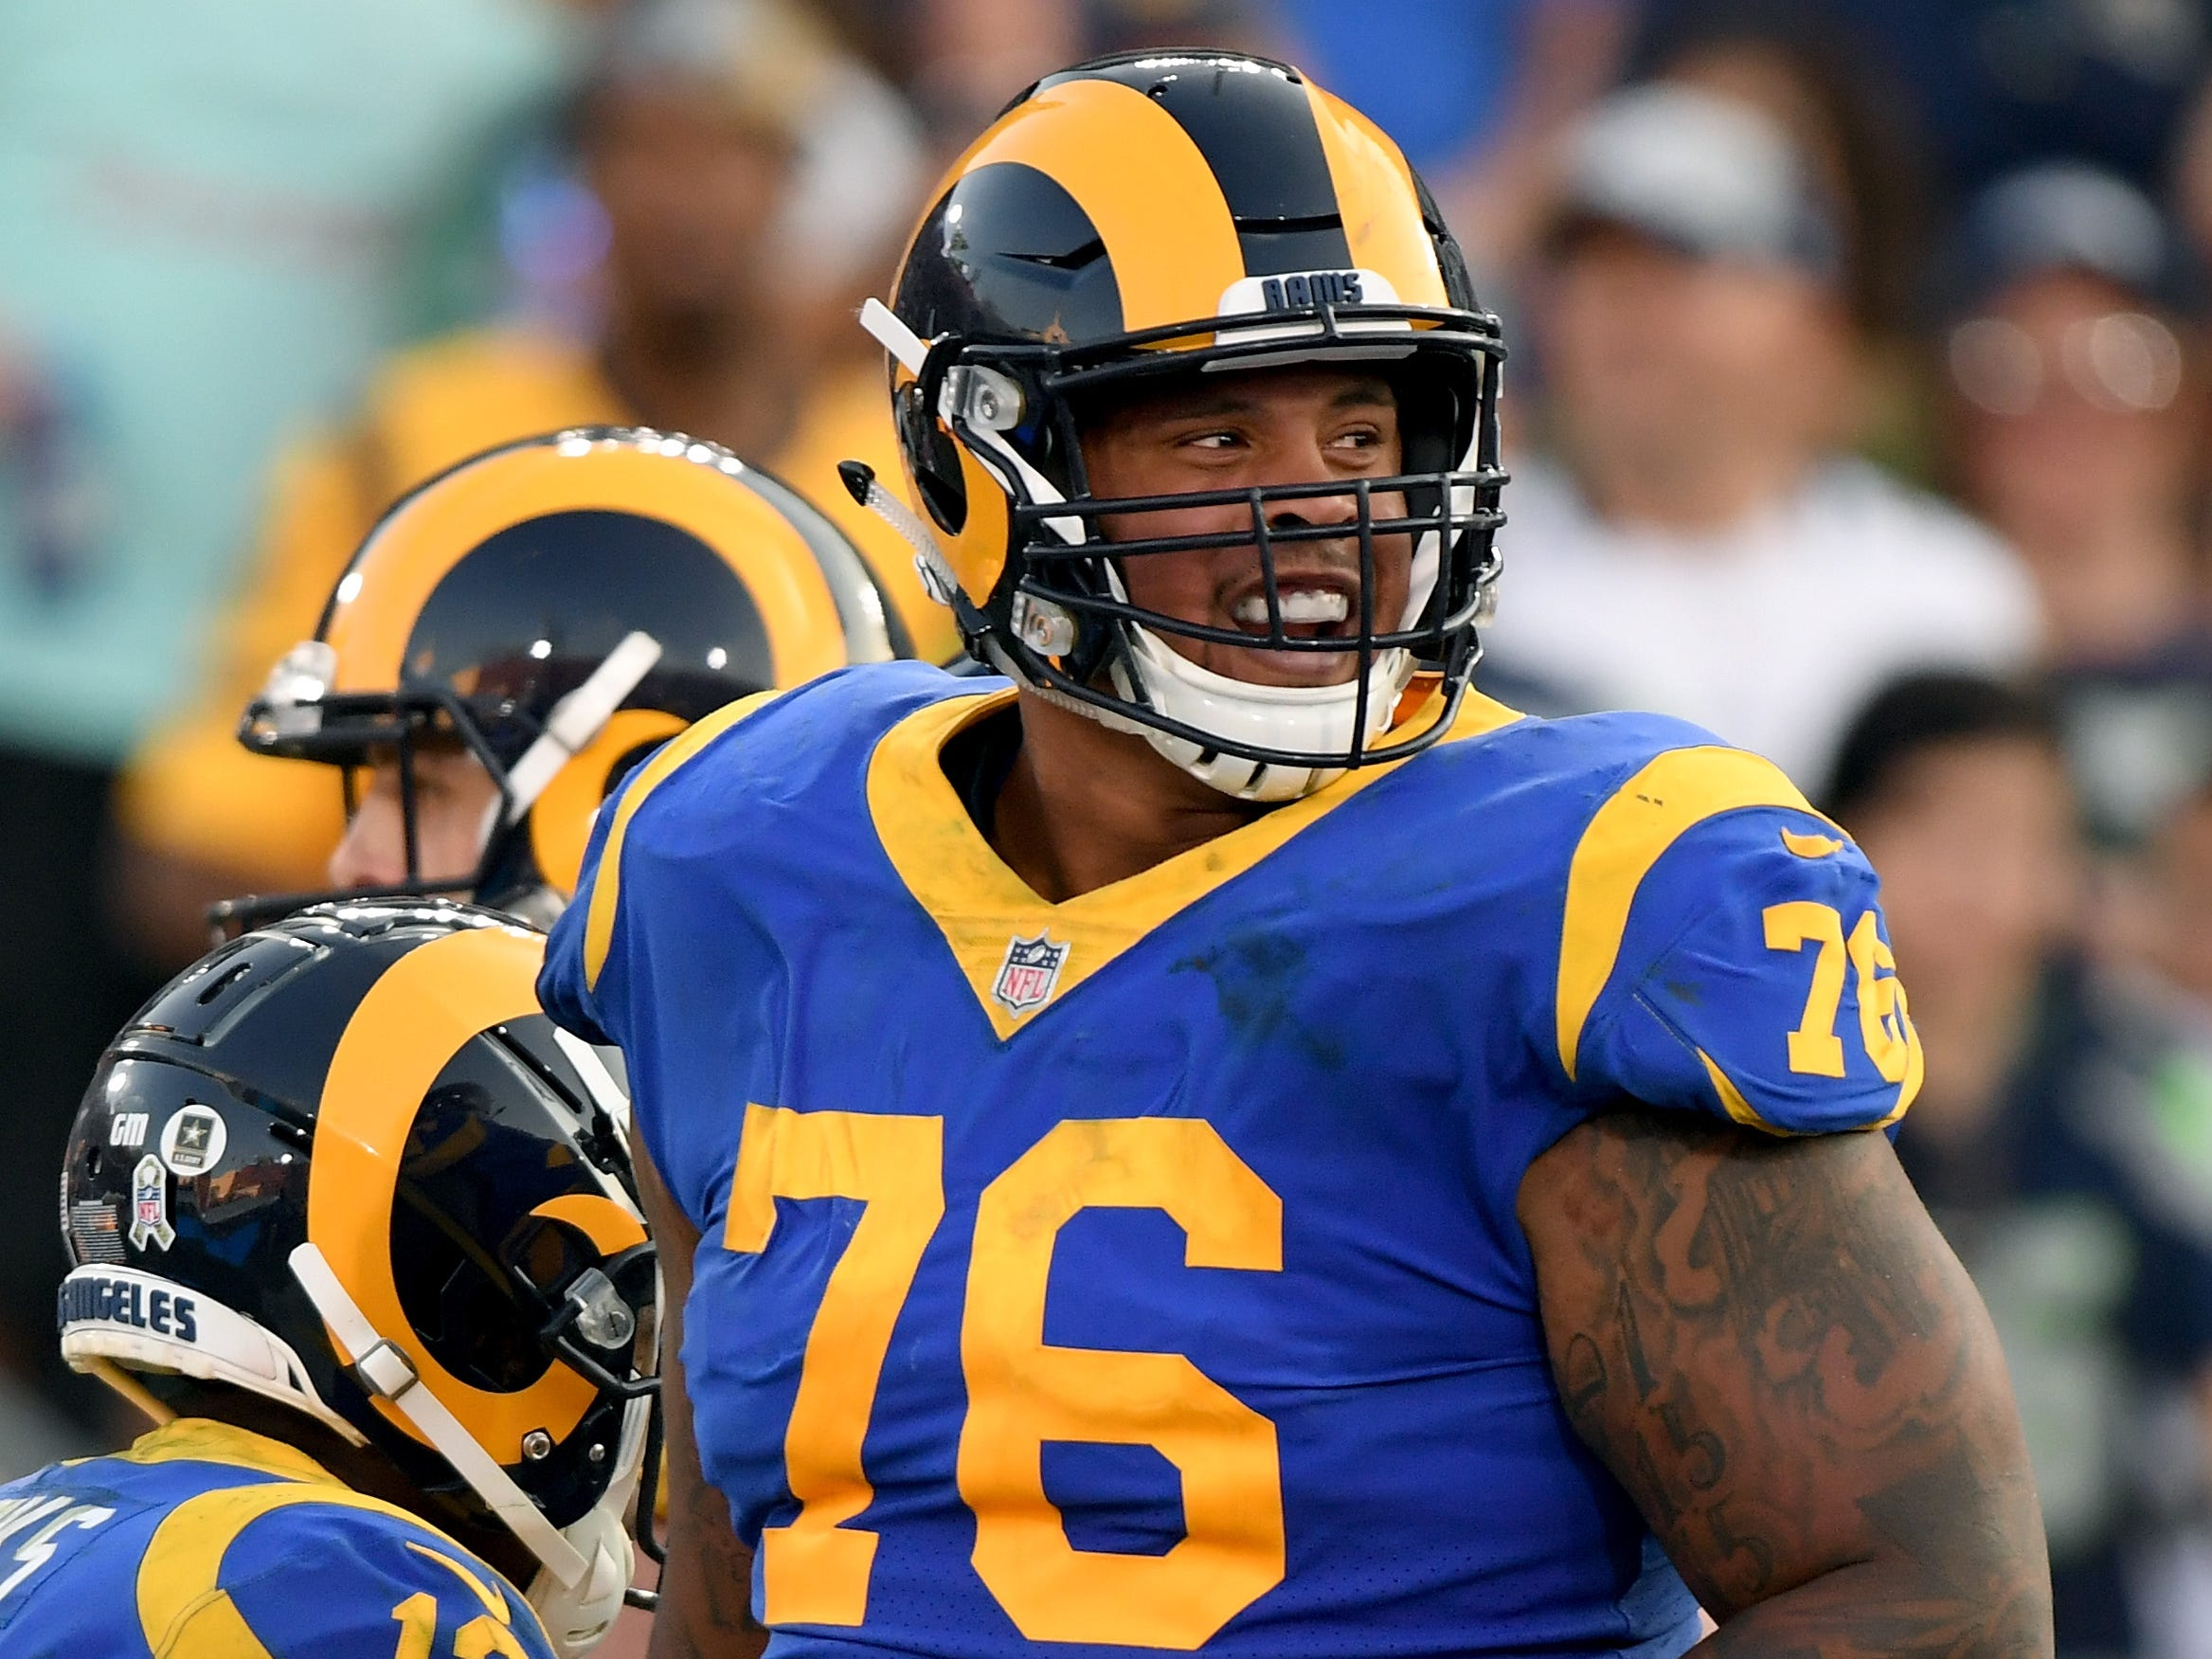 Rodger Saffold, G, Los Angeles Rams: The veteran guard is on the wrong side of 30, turning 31 this June, but he's been fairly durable, starting at least 15 games four of the past five seasons. The best interior lineman scheduled to be on the market, Saffold has been locked into playing left guard in recent years, but the Lions could easily move Frank Ragnow. Saffold has allowed an average of 2.0 sacks and 23 pressures his past four full seasons.